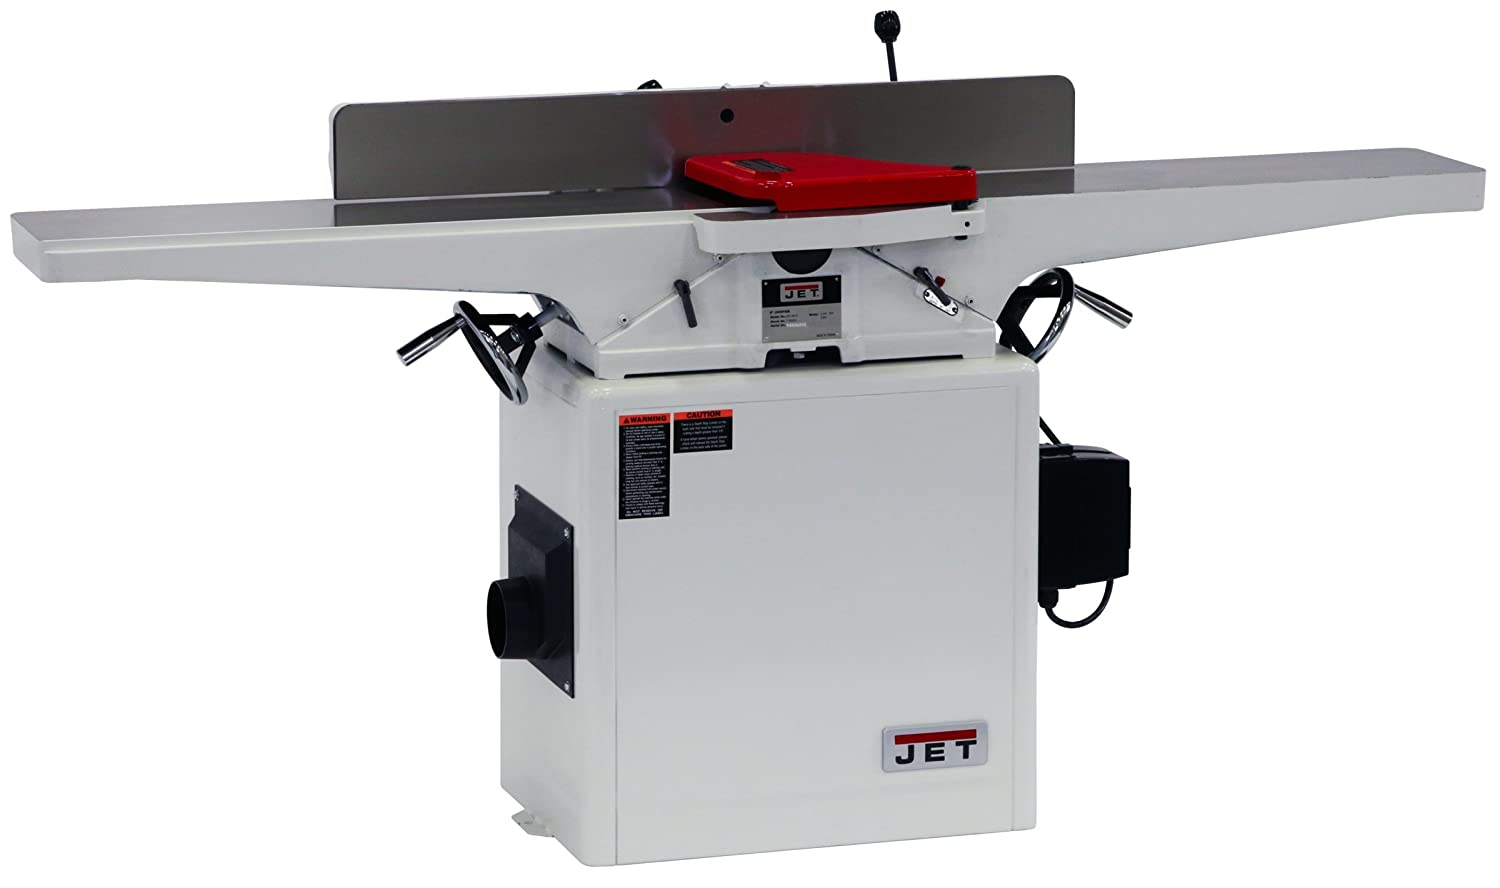 Jet 718200K 1PH 230V 2HP JJ-8CS 8 Closed Stand Jointer, Only in  Woodworking, Jointers - - Amazon.com